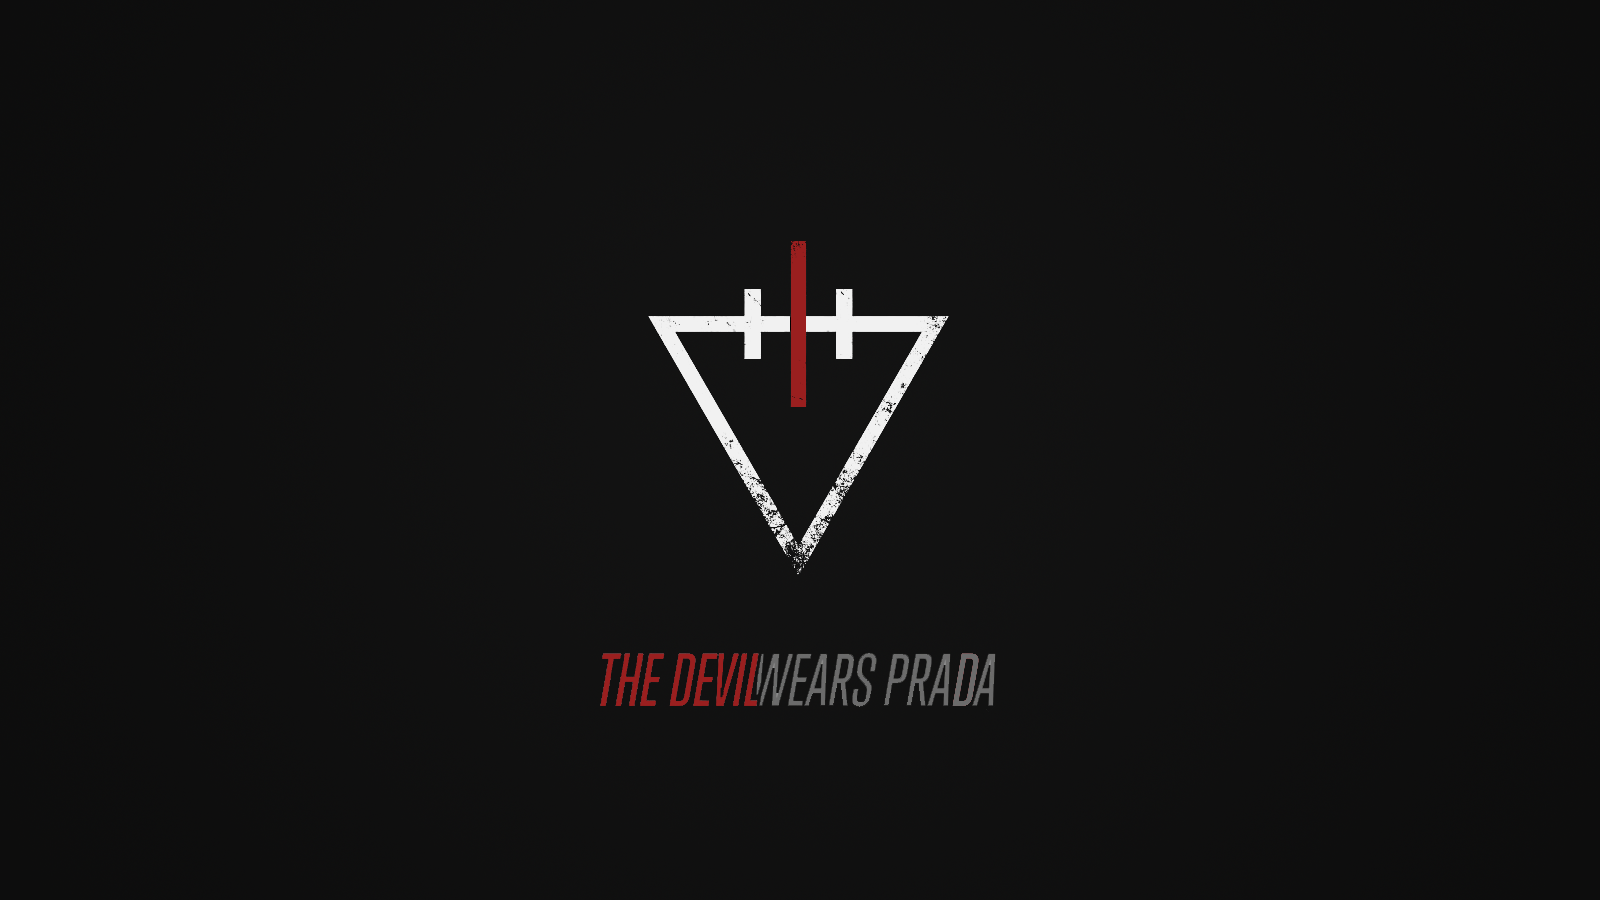 The Devil Wears Prada Band Wallpapers Group (62+)